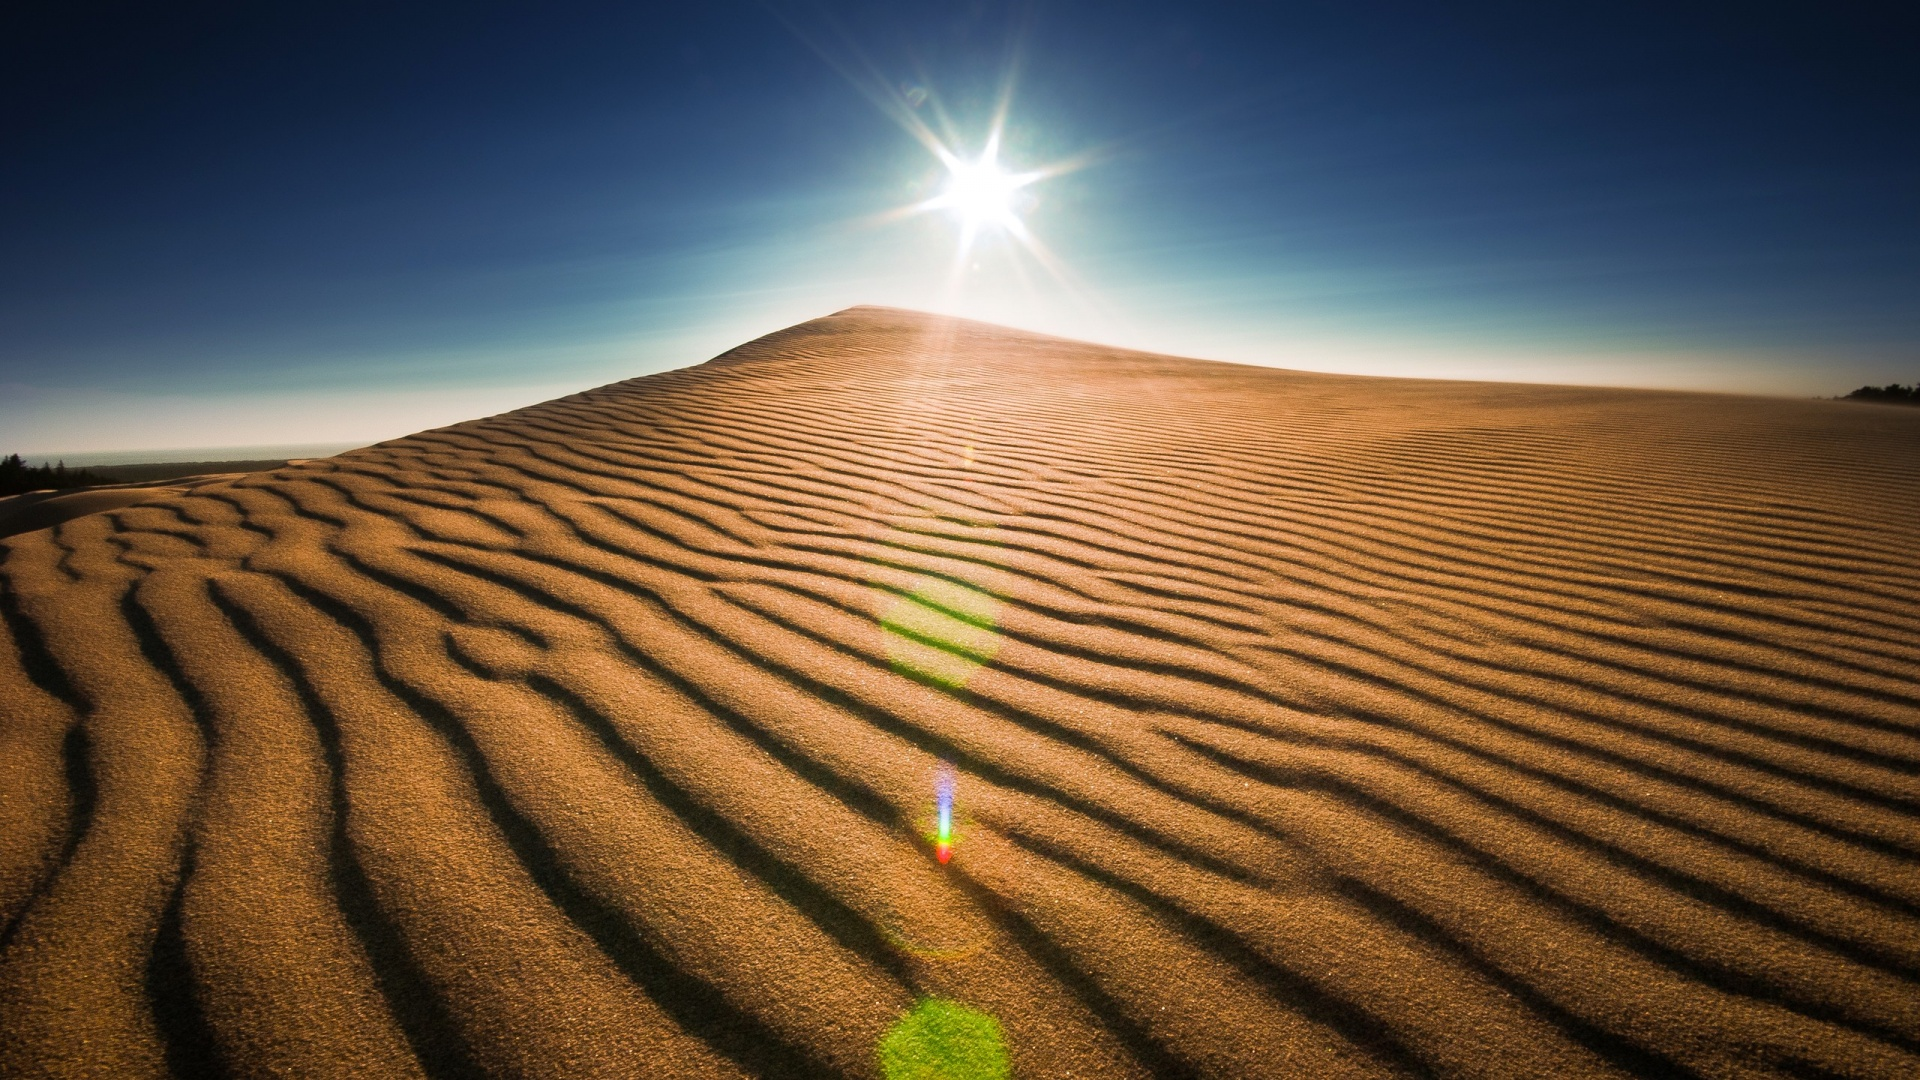 desert wallpapers high quality - photo #13